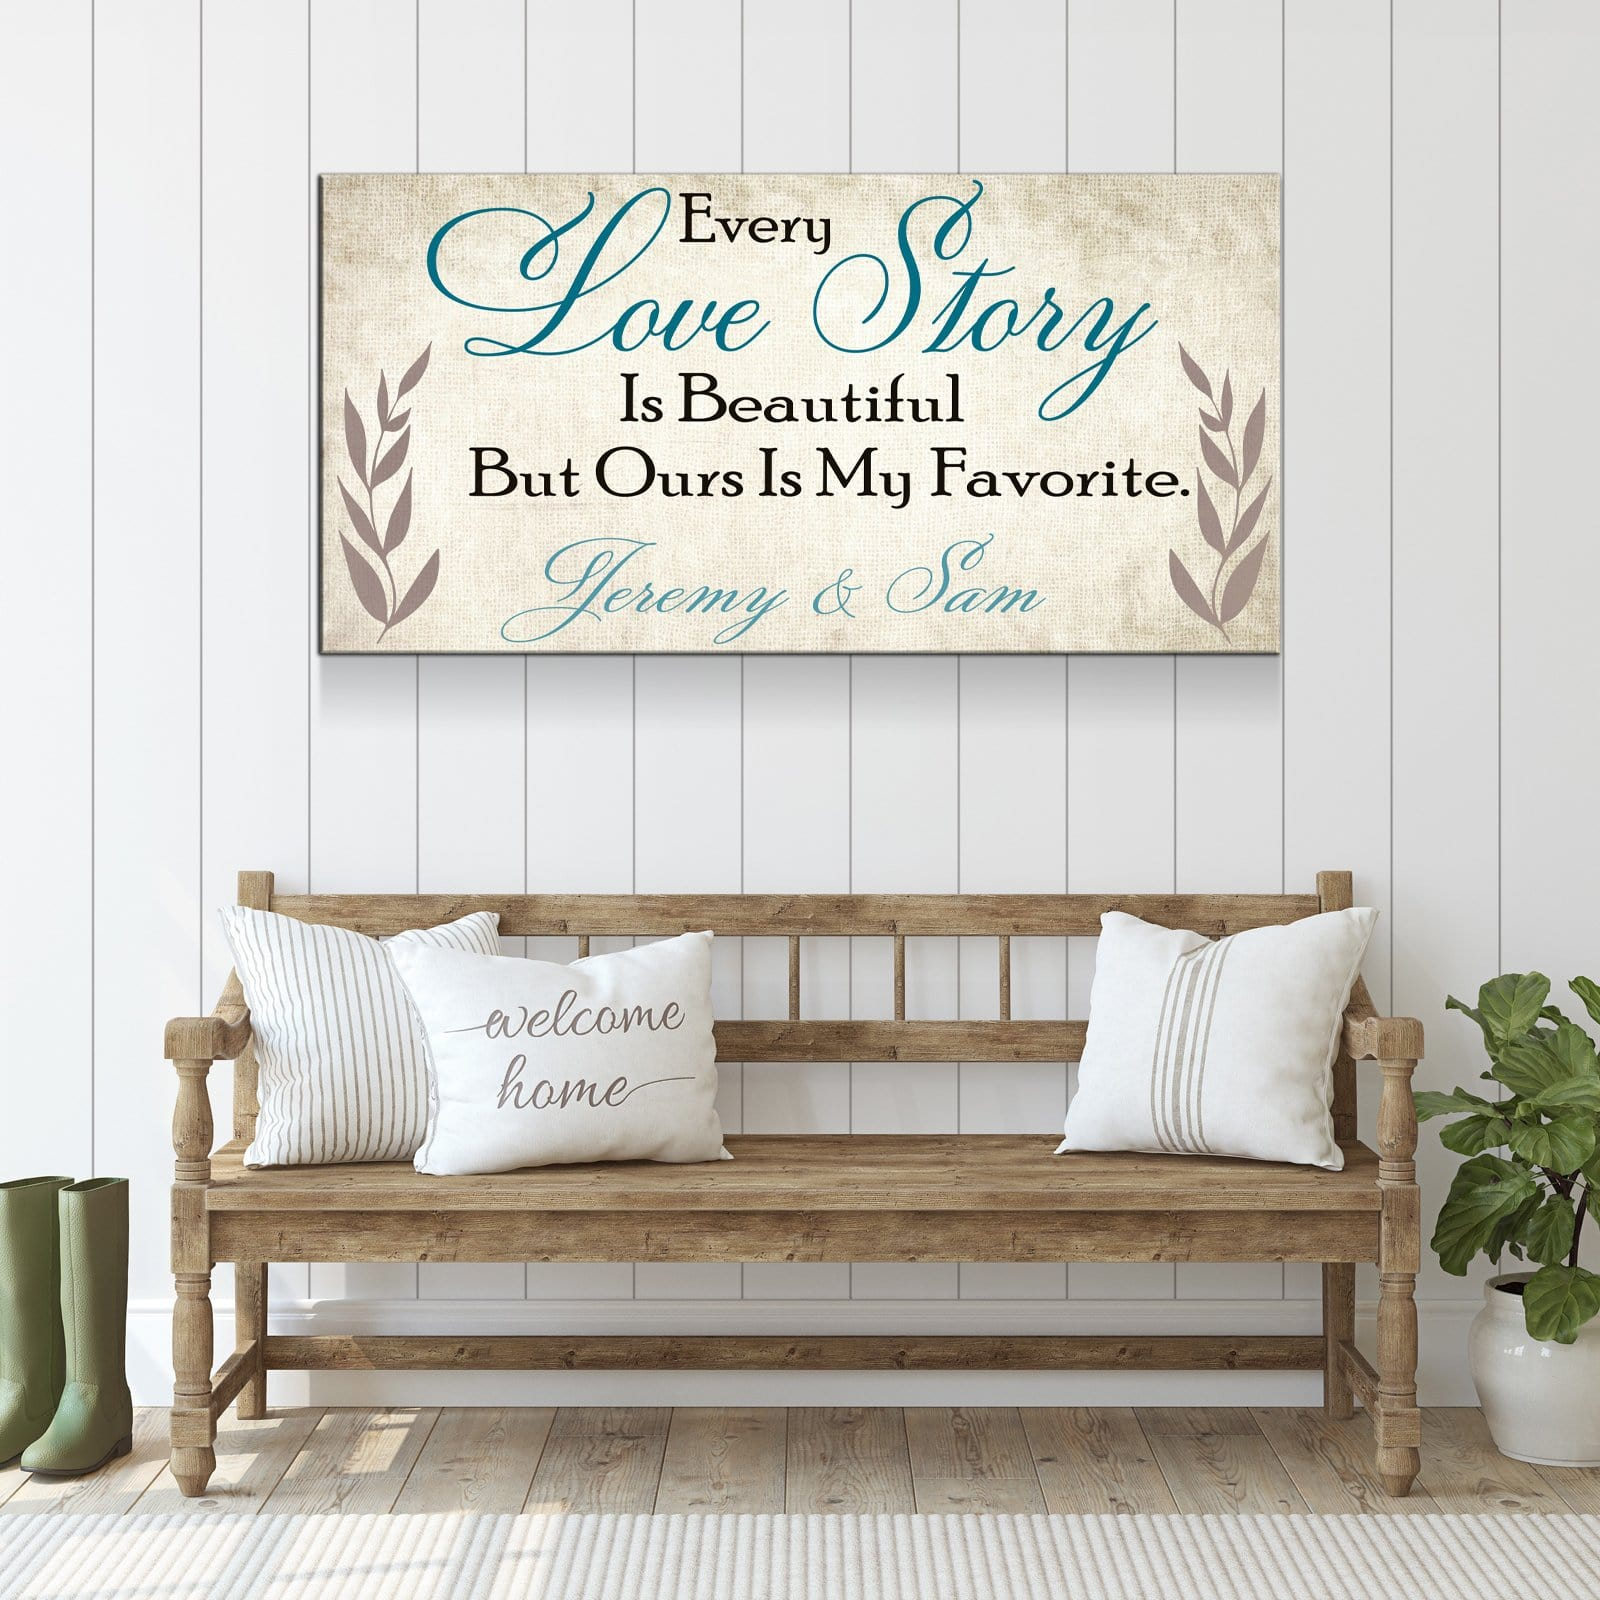 Every Love Story Is Beautiful - Personalized